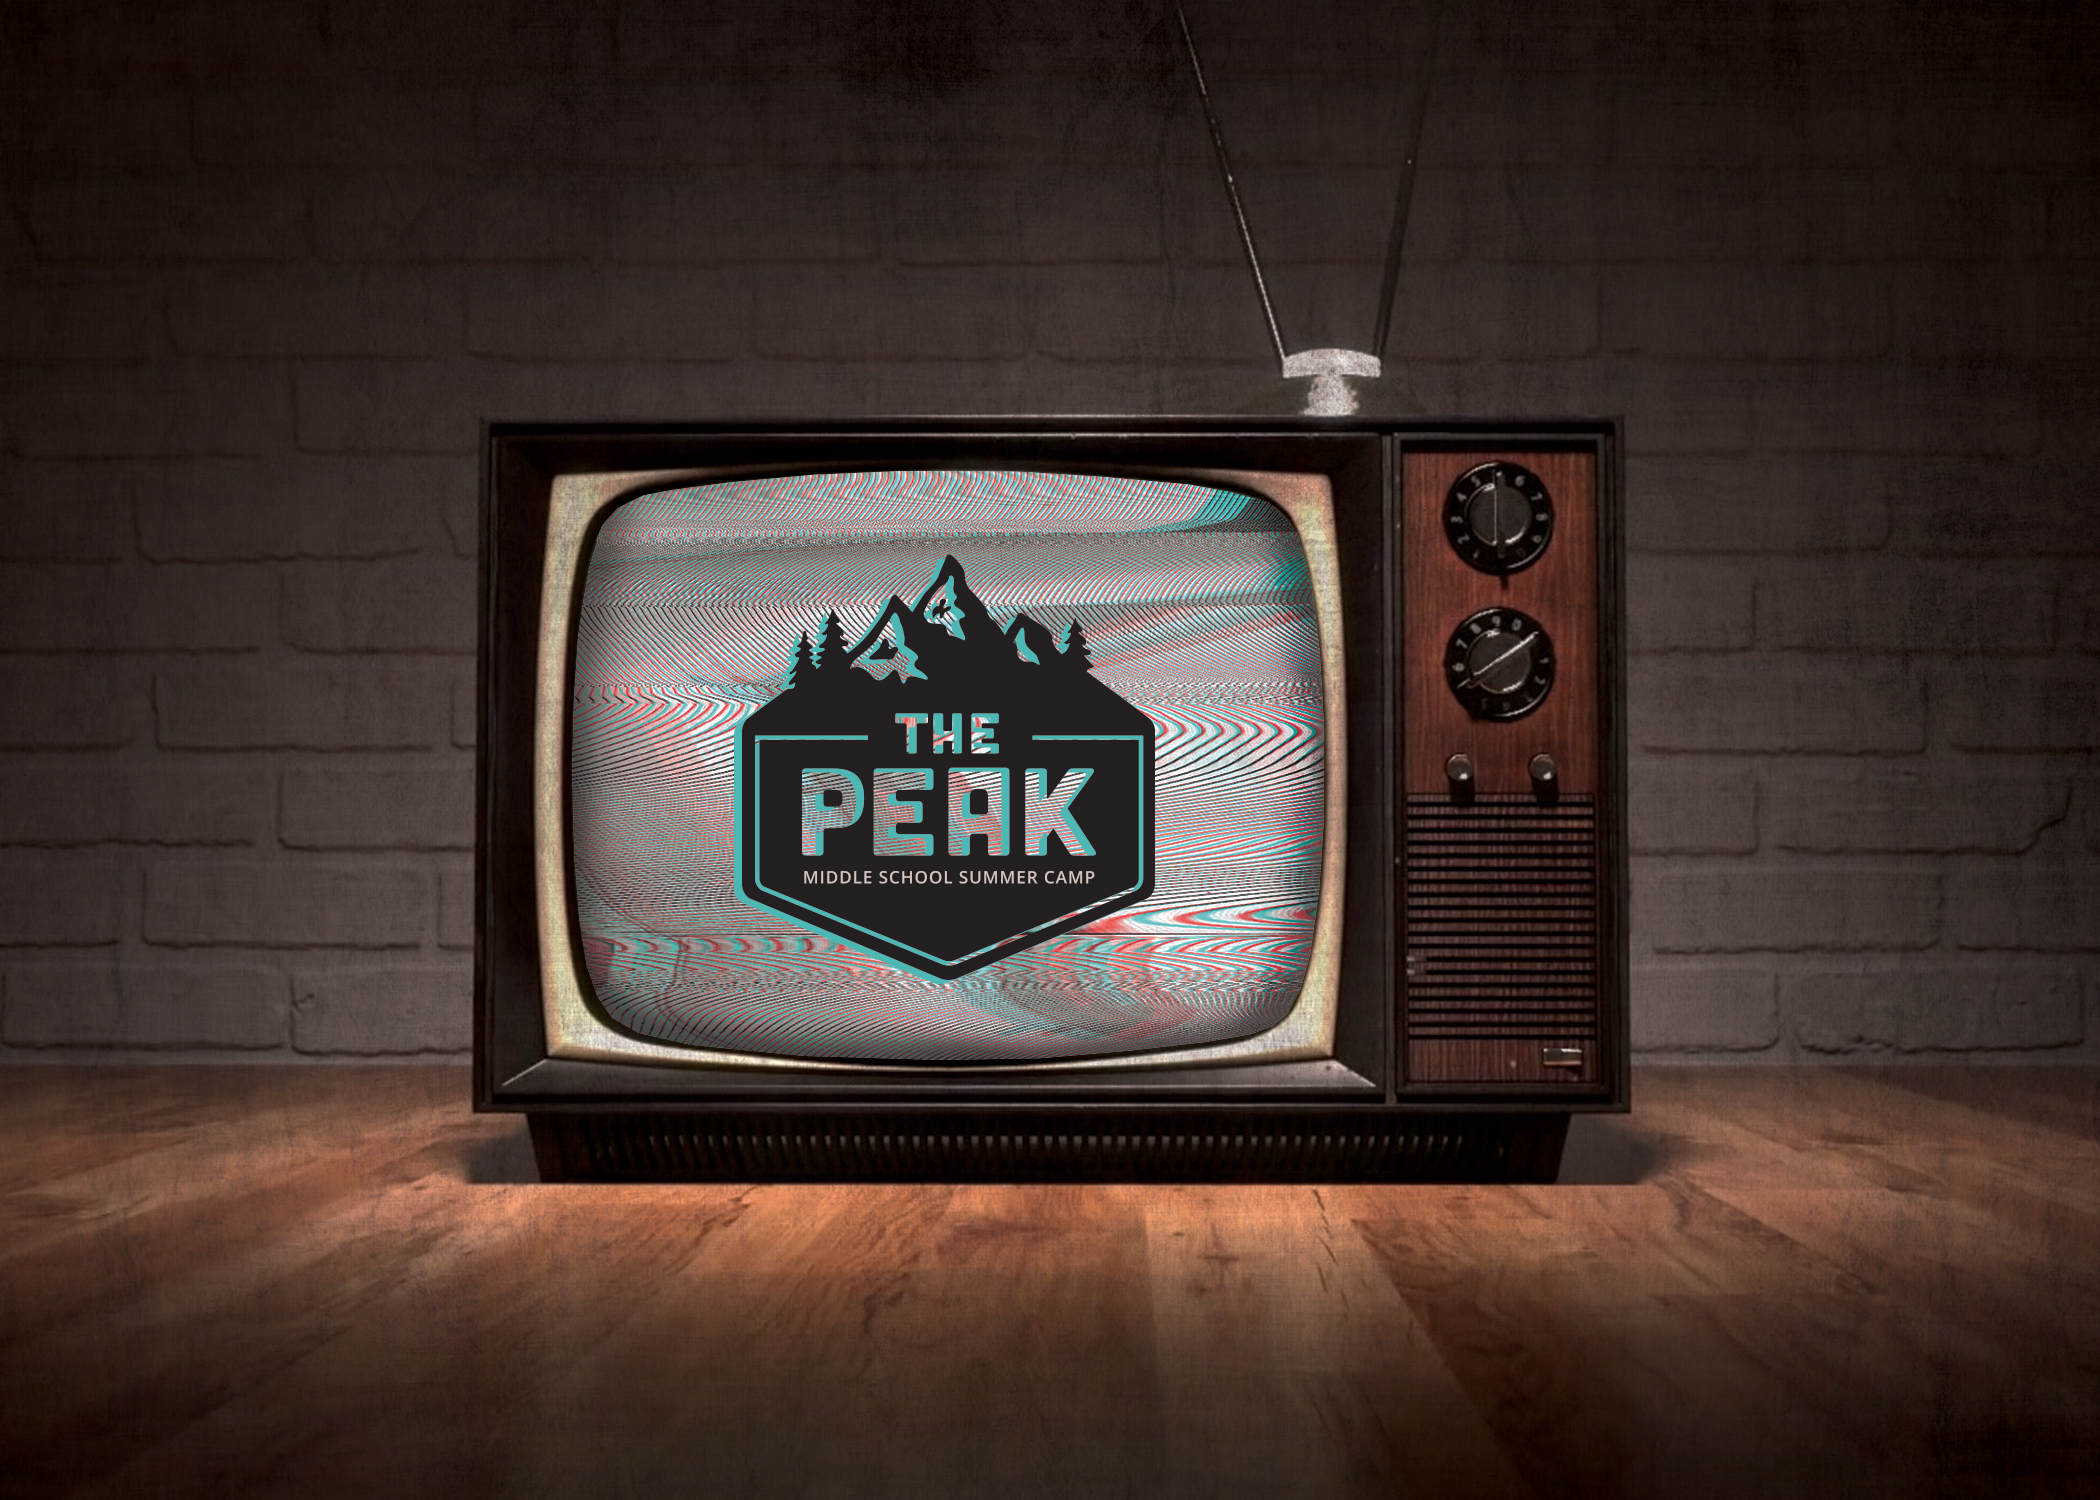 The peak 2018 title on screen